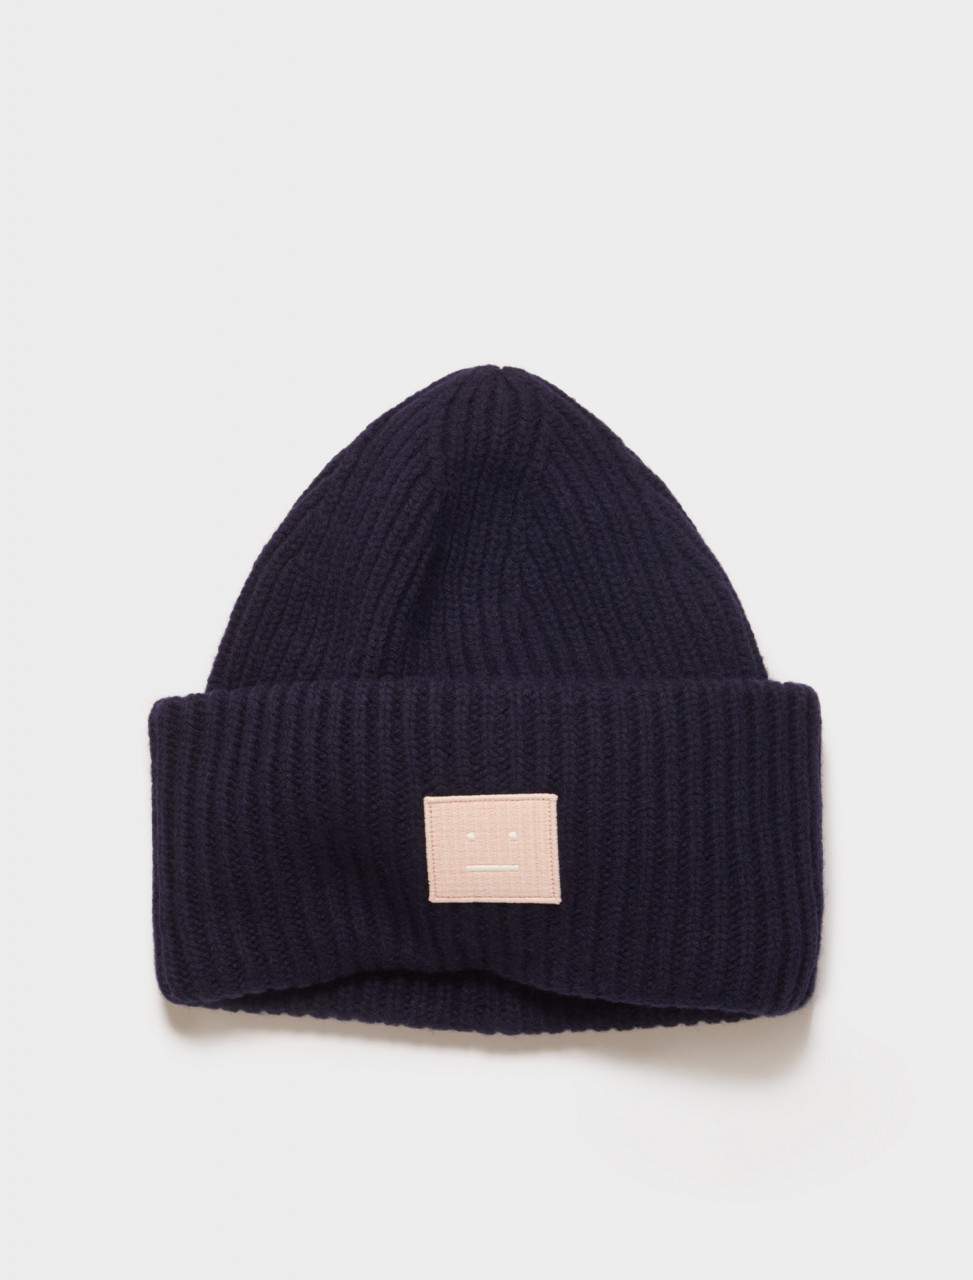 110-D40009-BSN ACNE STUDIOS PANSY N FACE BEANIE NAVY PINK